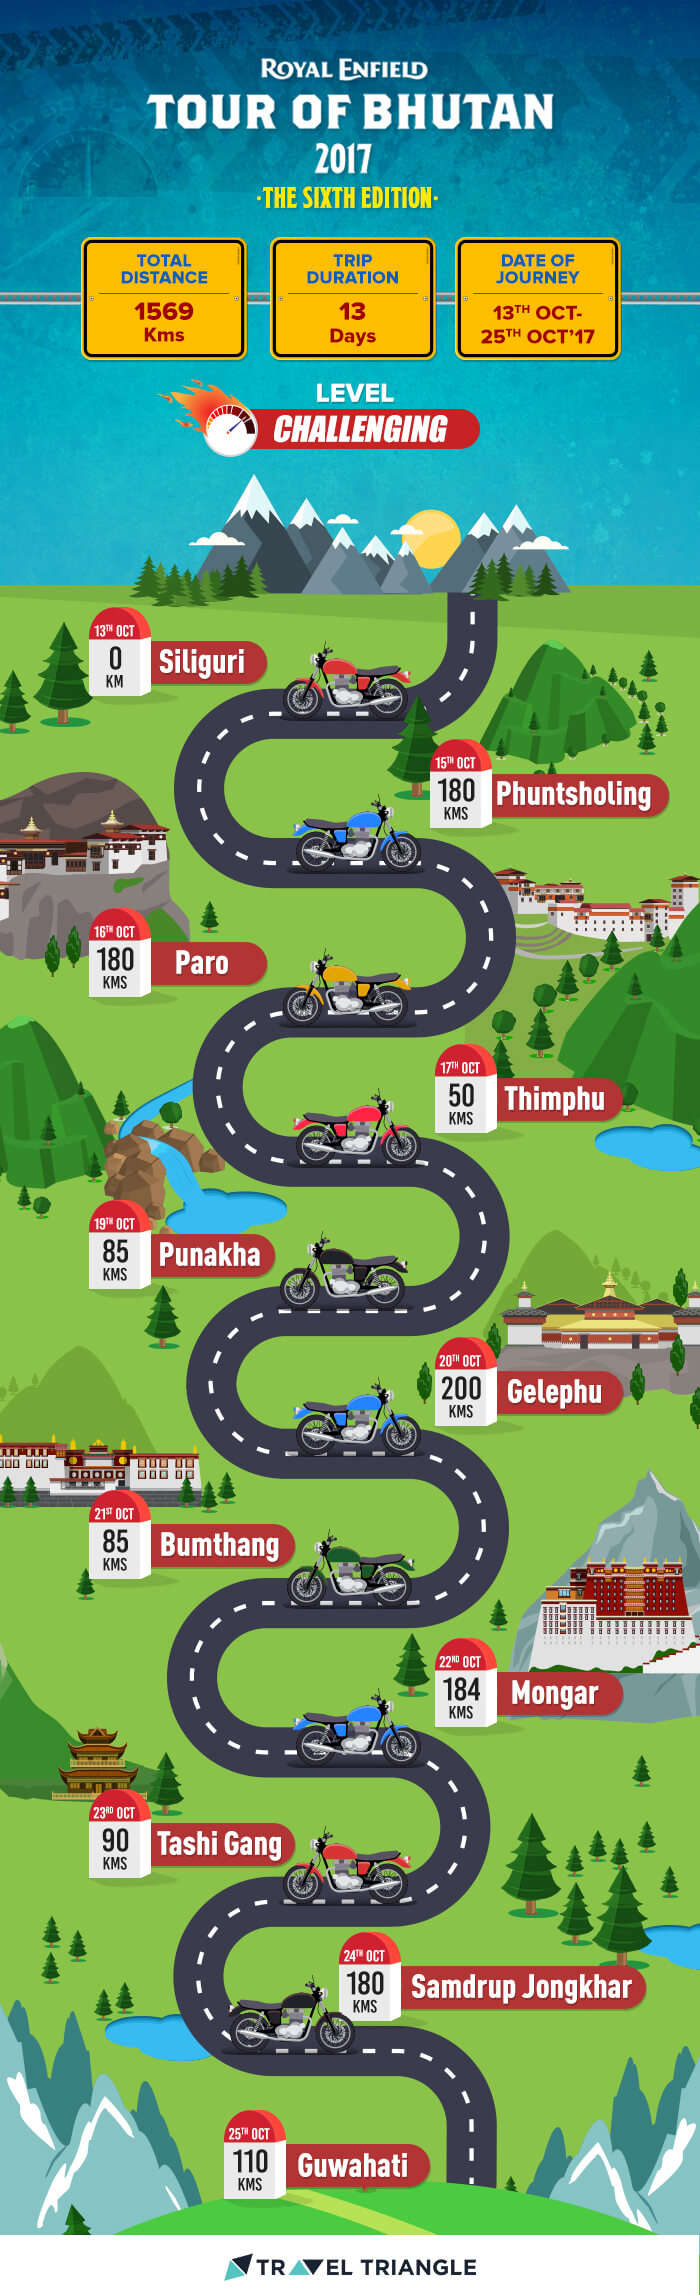 Royal Enfield India Tour Of Bhutan 2017